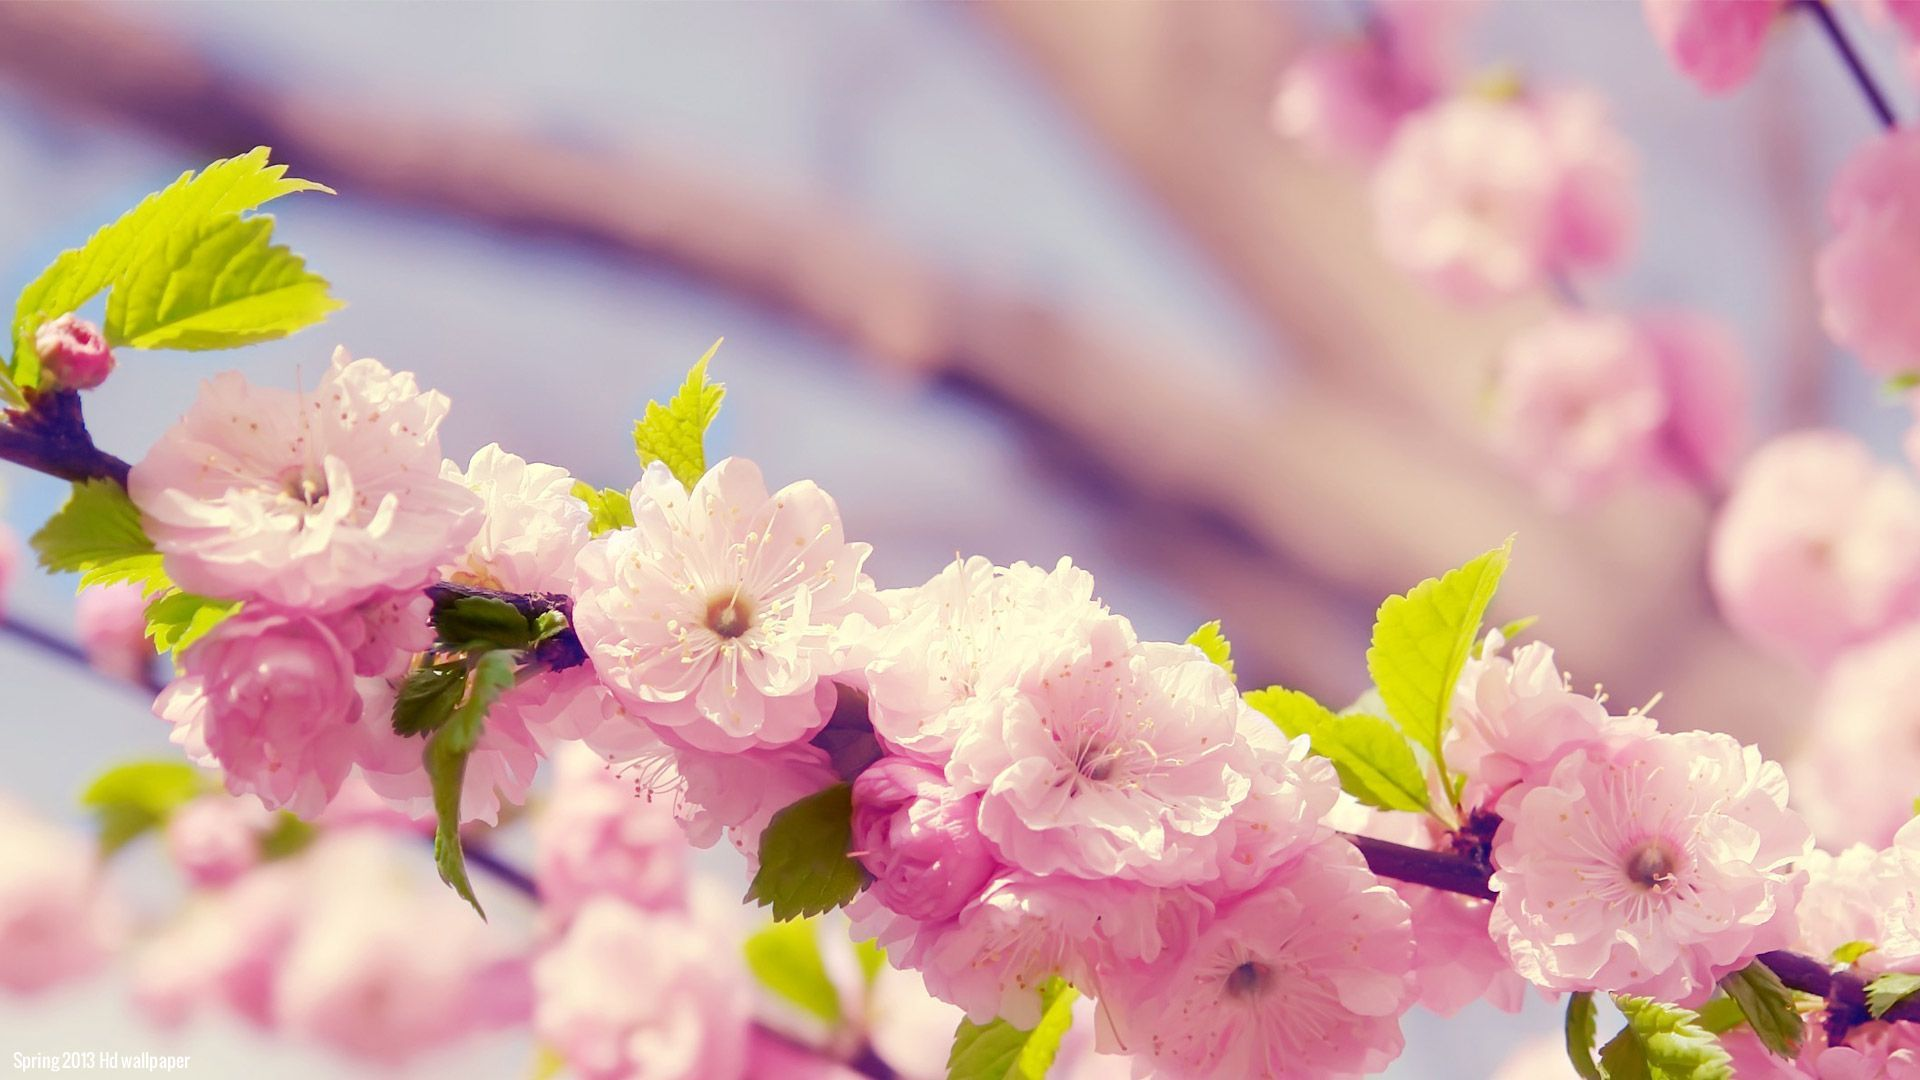 Spring flowers wallpapers HD (60+) - wallpaper.wiki